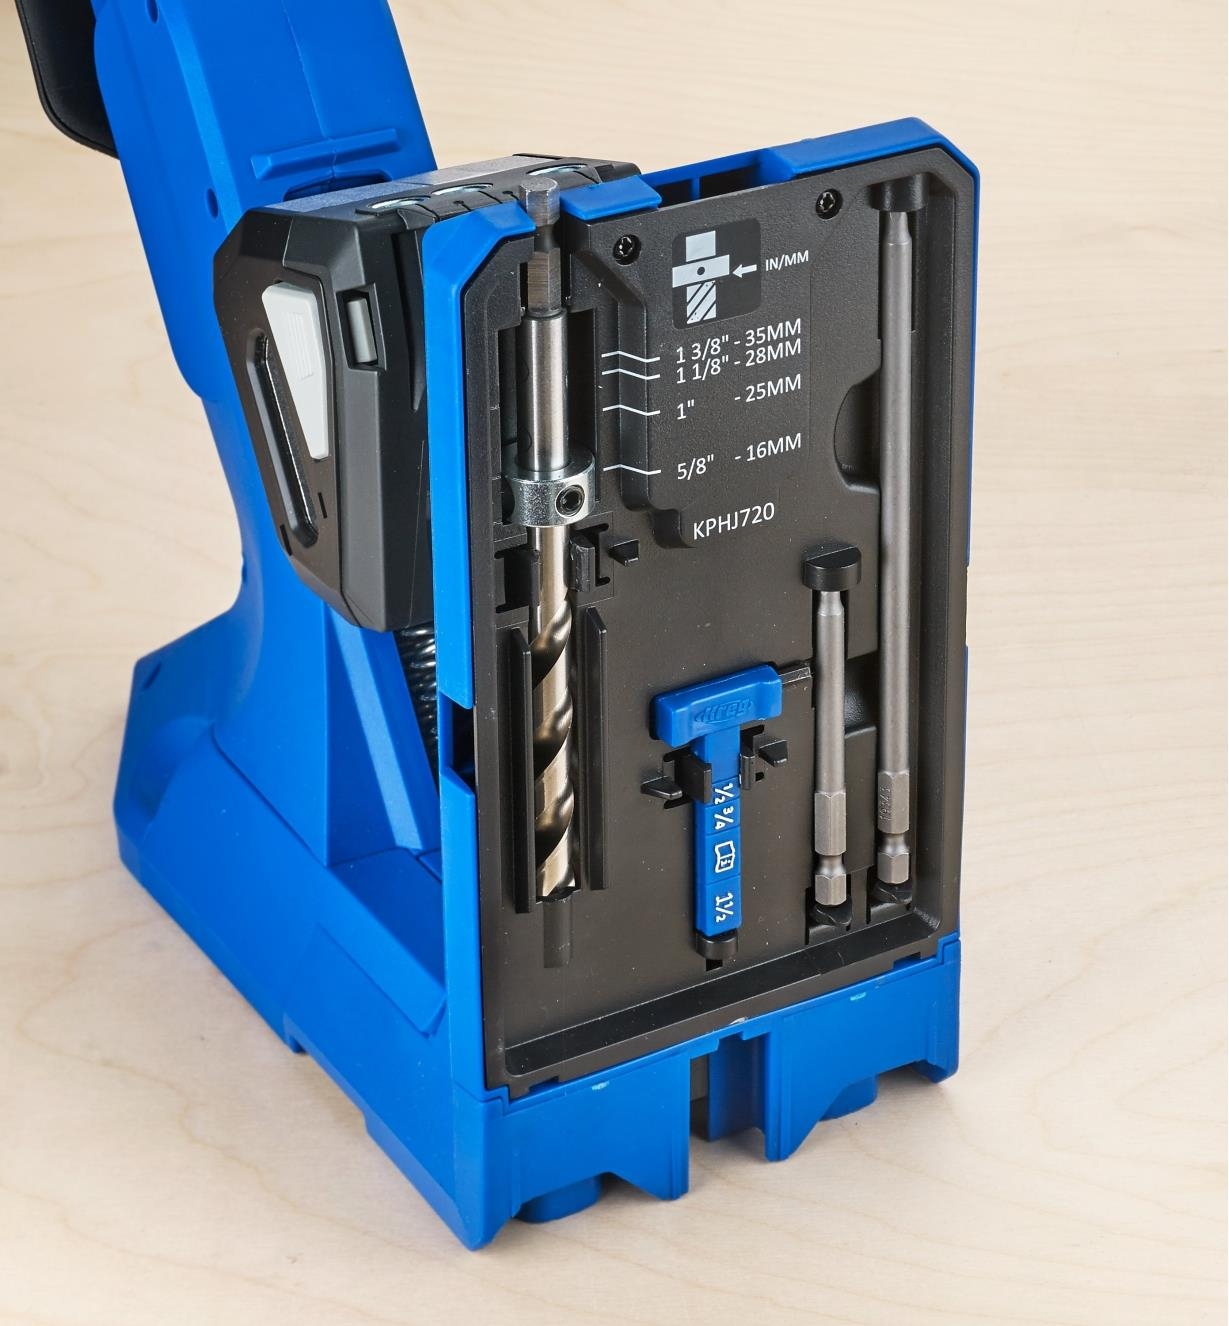 The included drill bit, driver bits and thickness gauge stored in slots in the 720 Pro jig base